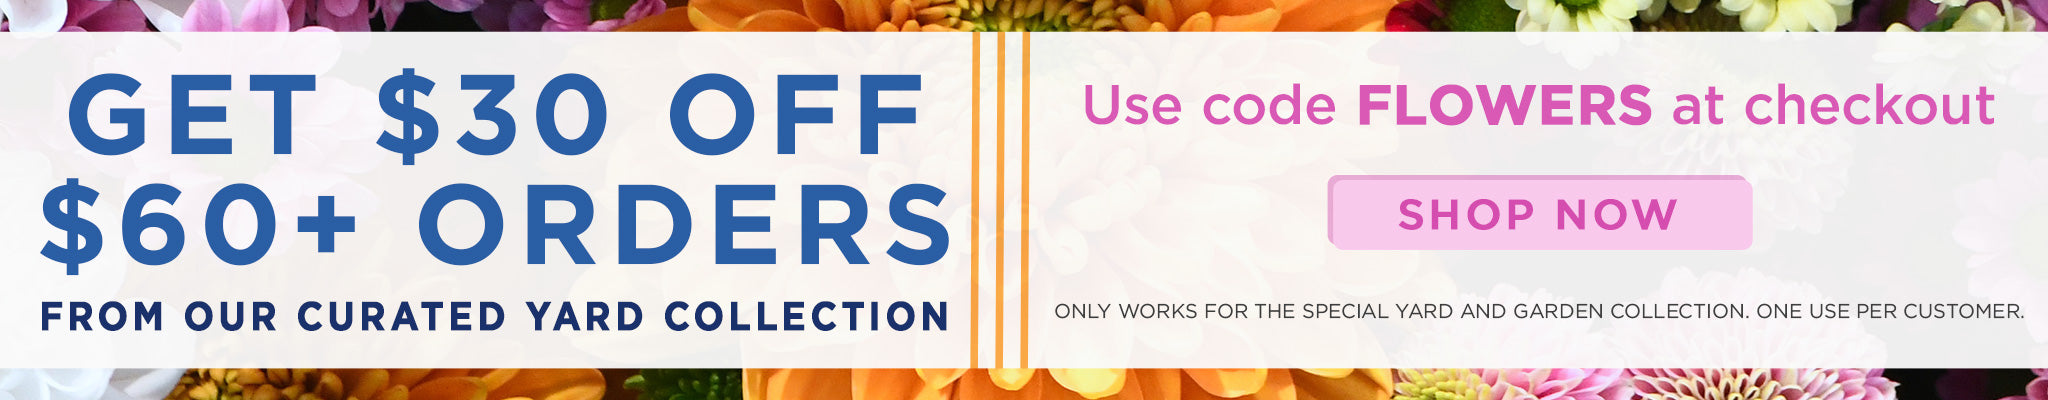 Get $30 Off $60+ Orders from Our Curated Yard Collection | Use code FLOWERS at checkout | Shop Now | Only works for the special yard and garden collection. One use per customer.